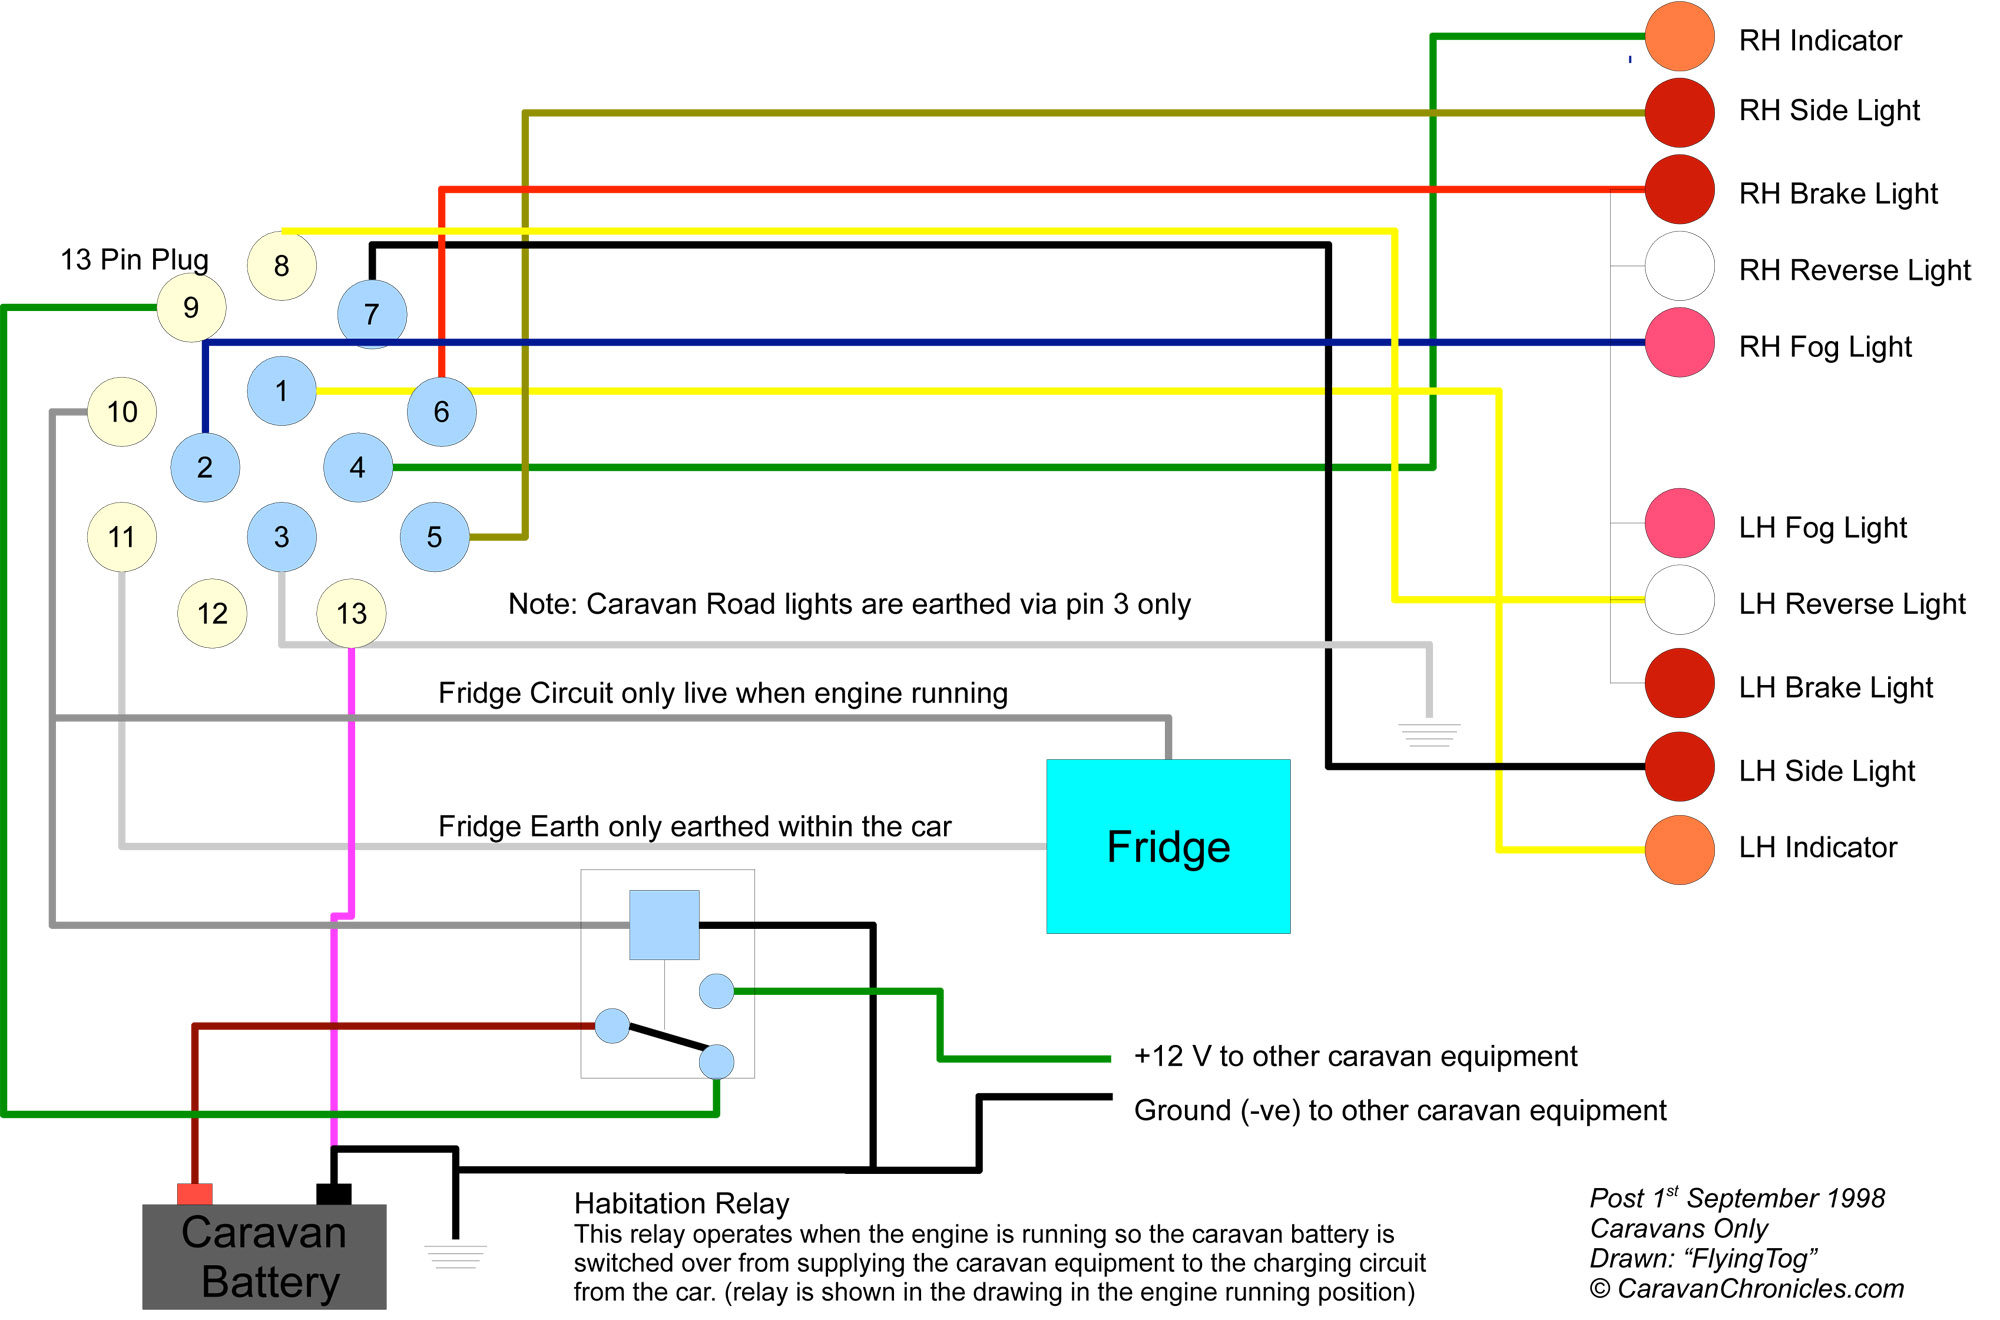 understanding caravan and tow car electrics caravan chronicles, wiring, wiring diagram for 3 way caravan fridge